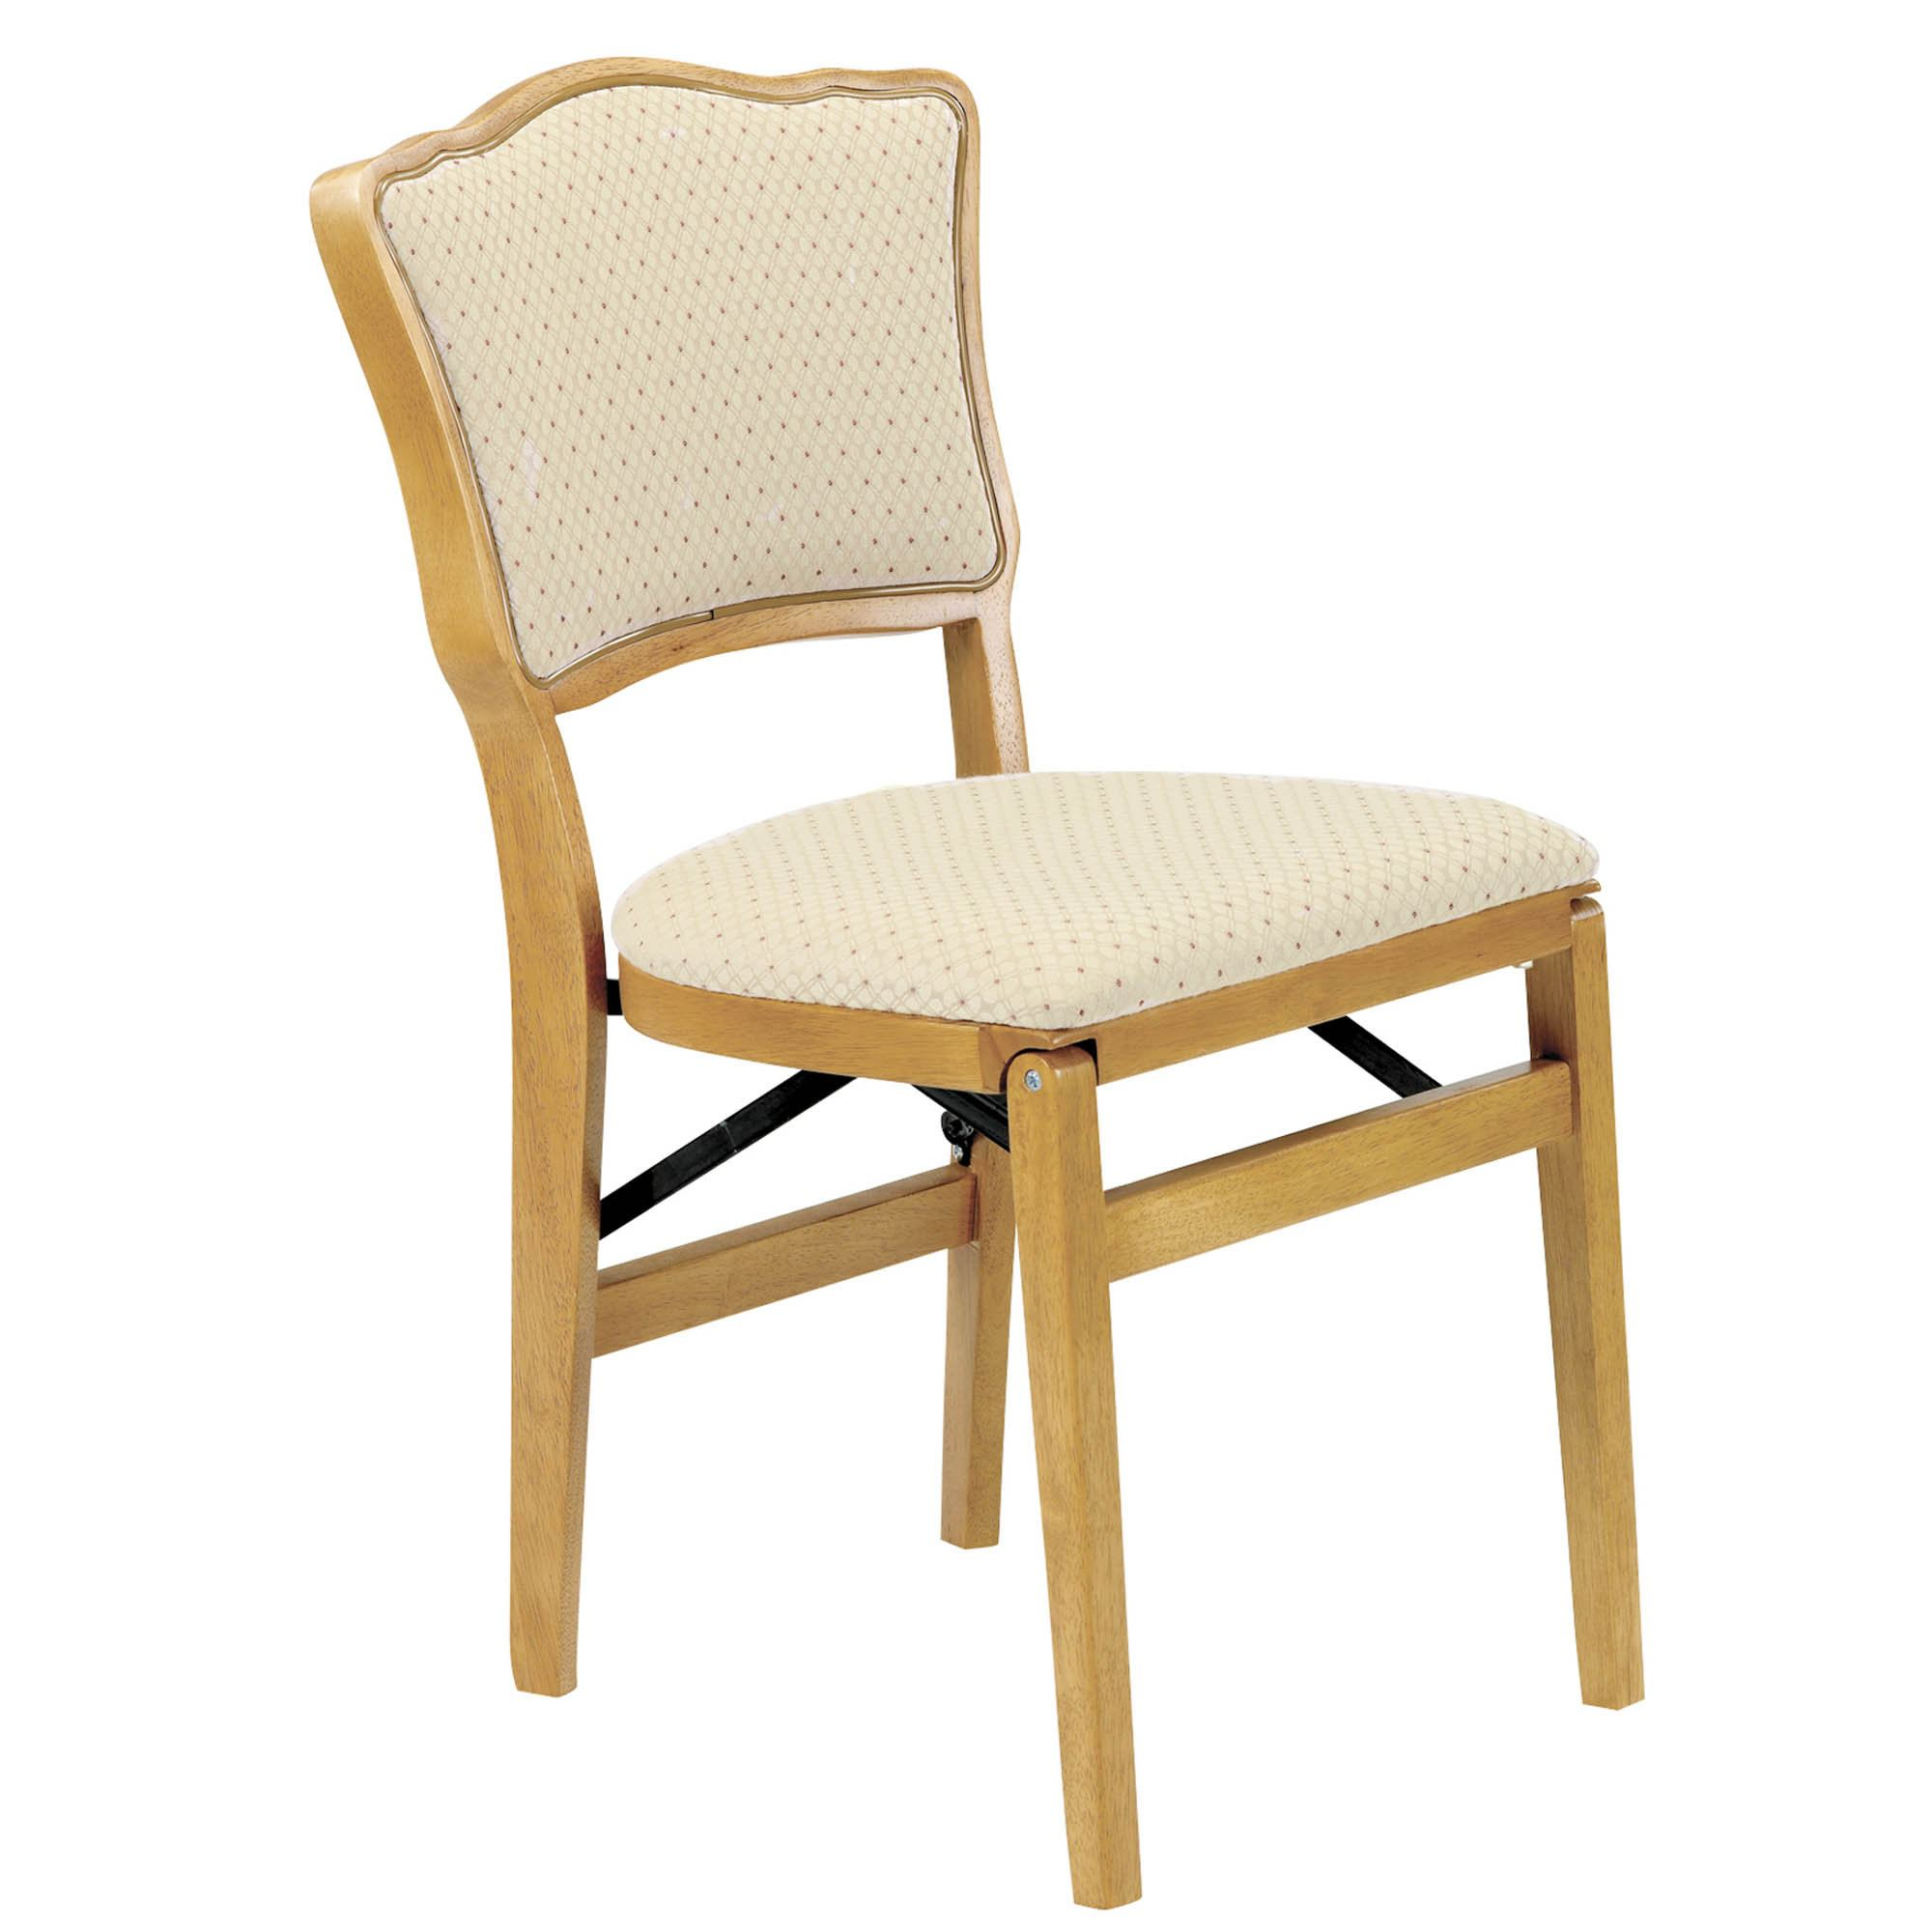 Beautiful upholstered folding chairs dover upholstered chair pair pair eunyizv